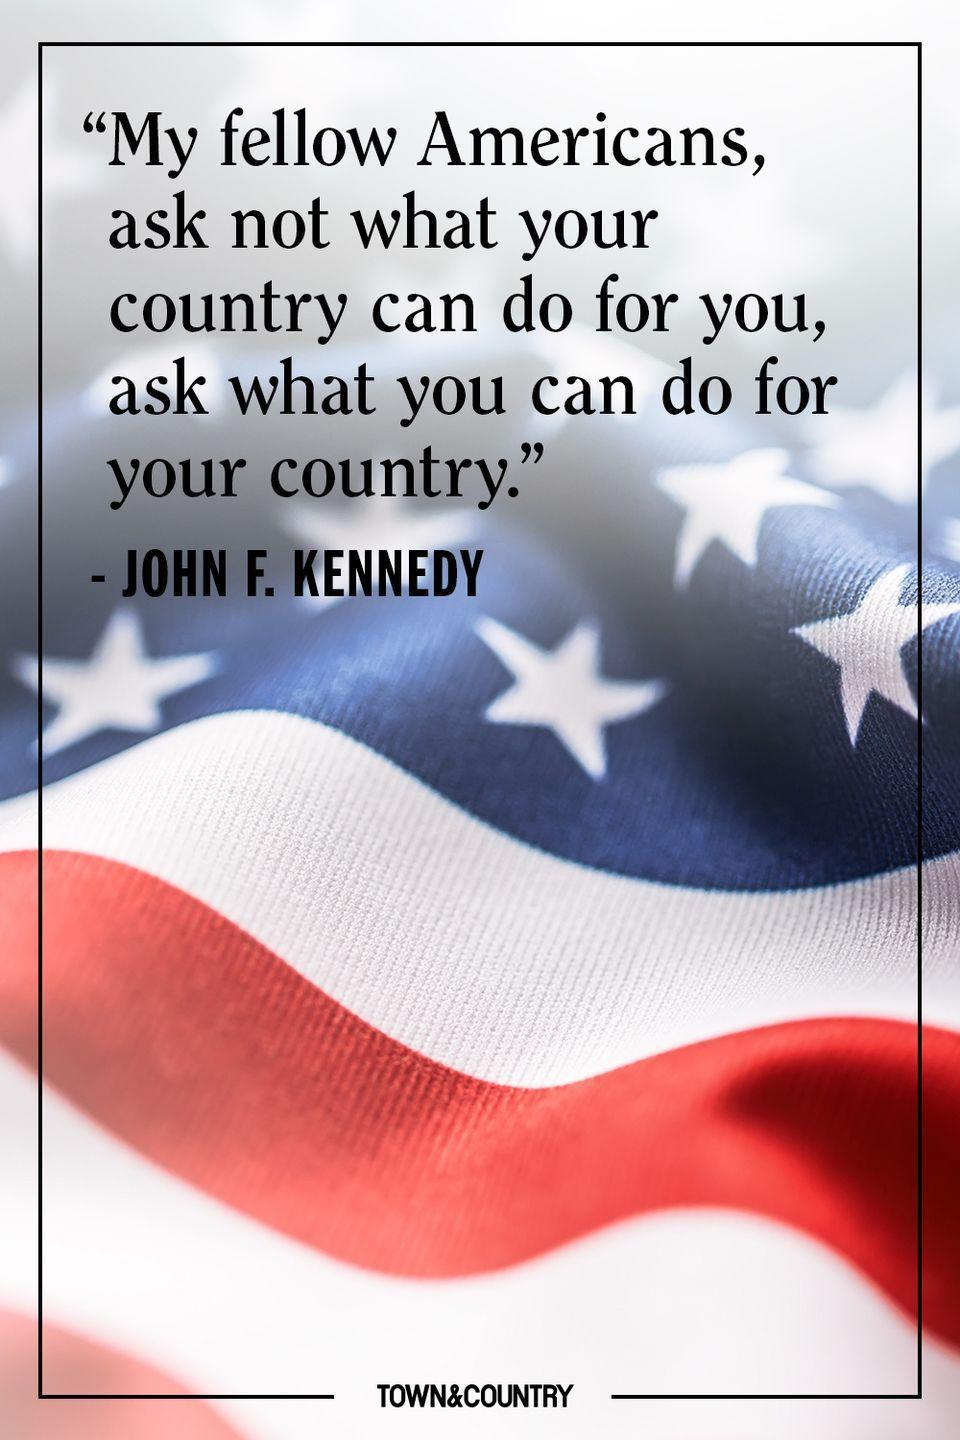 "<p>""My fellow Americans, ask not what your country can do for you, ask what you can do for your country.""</p><p>– John F. Kennedy</p>"